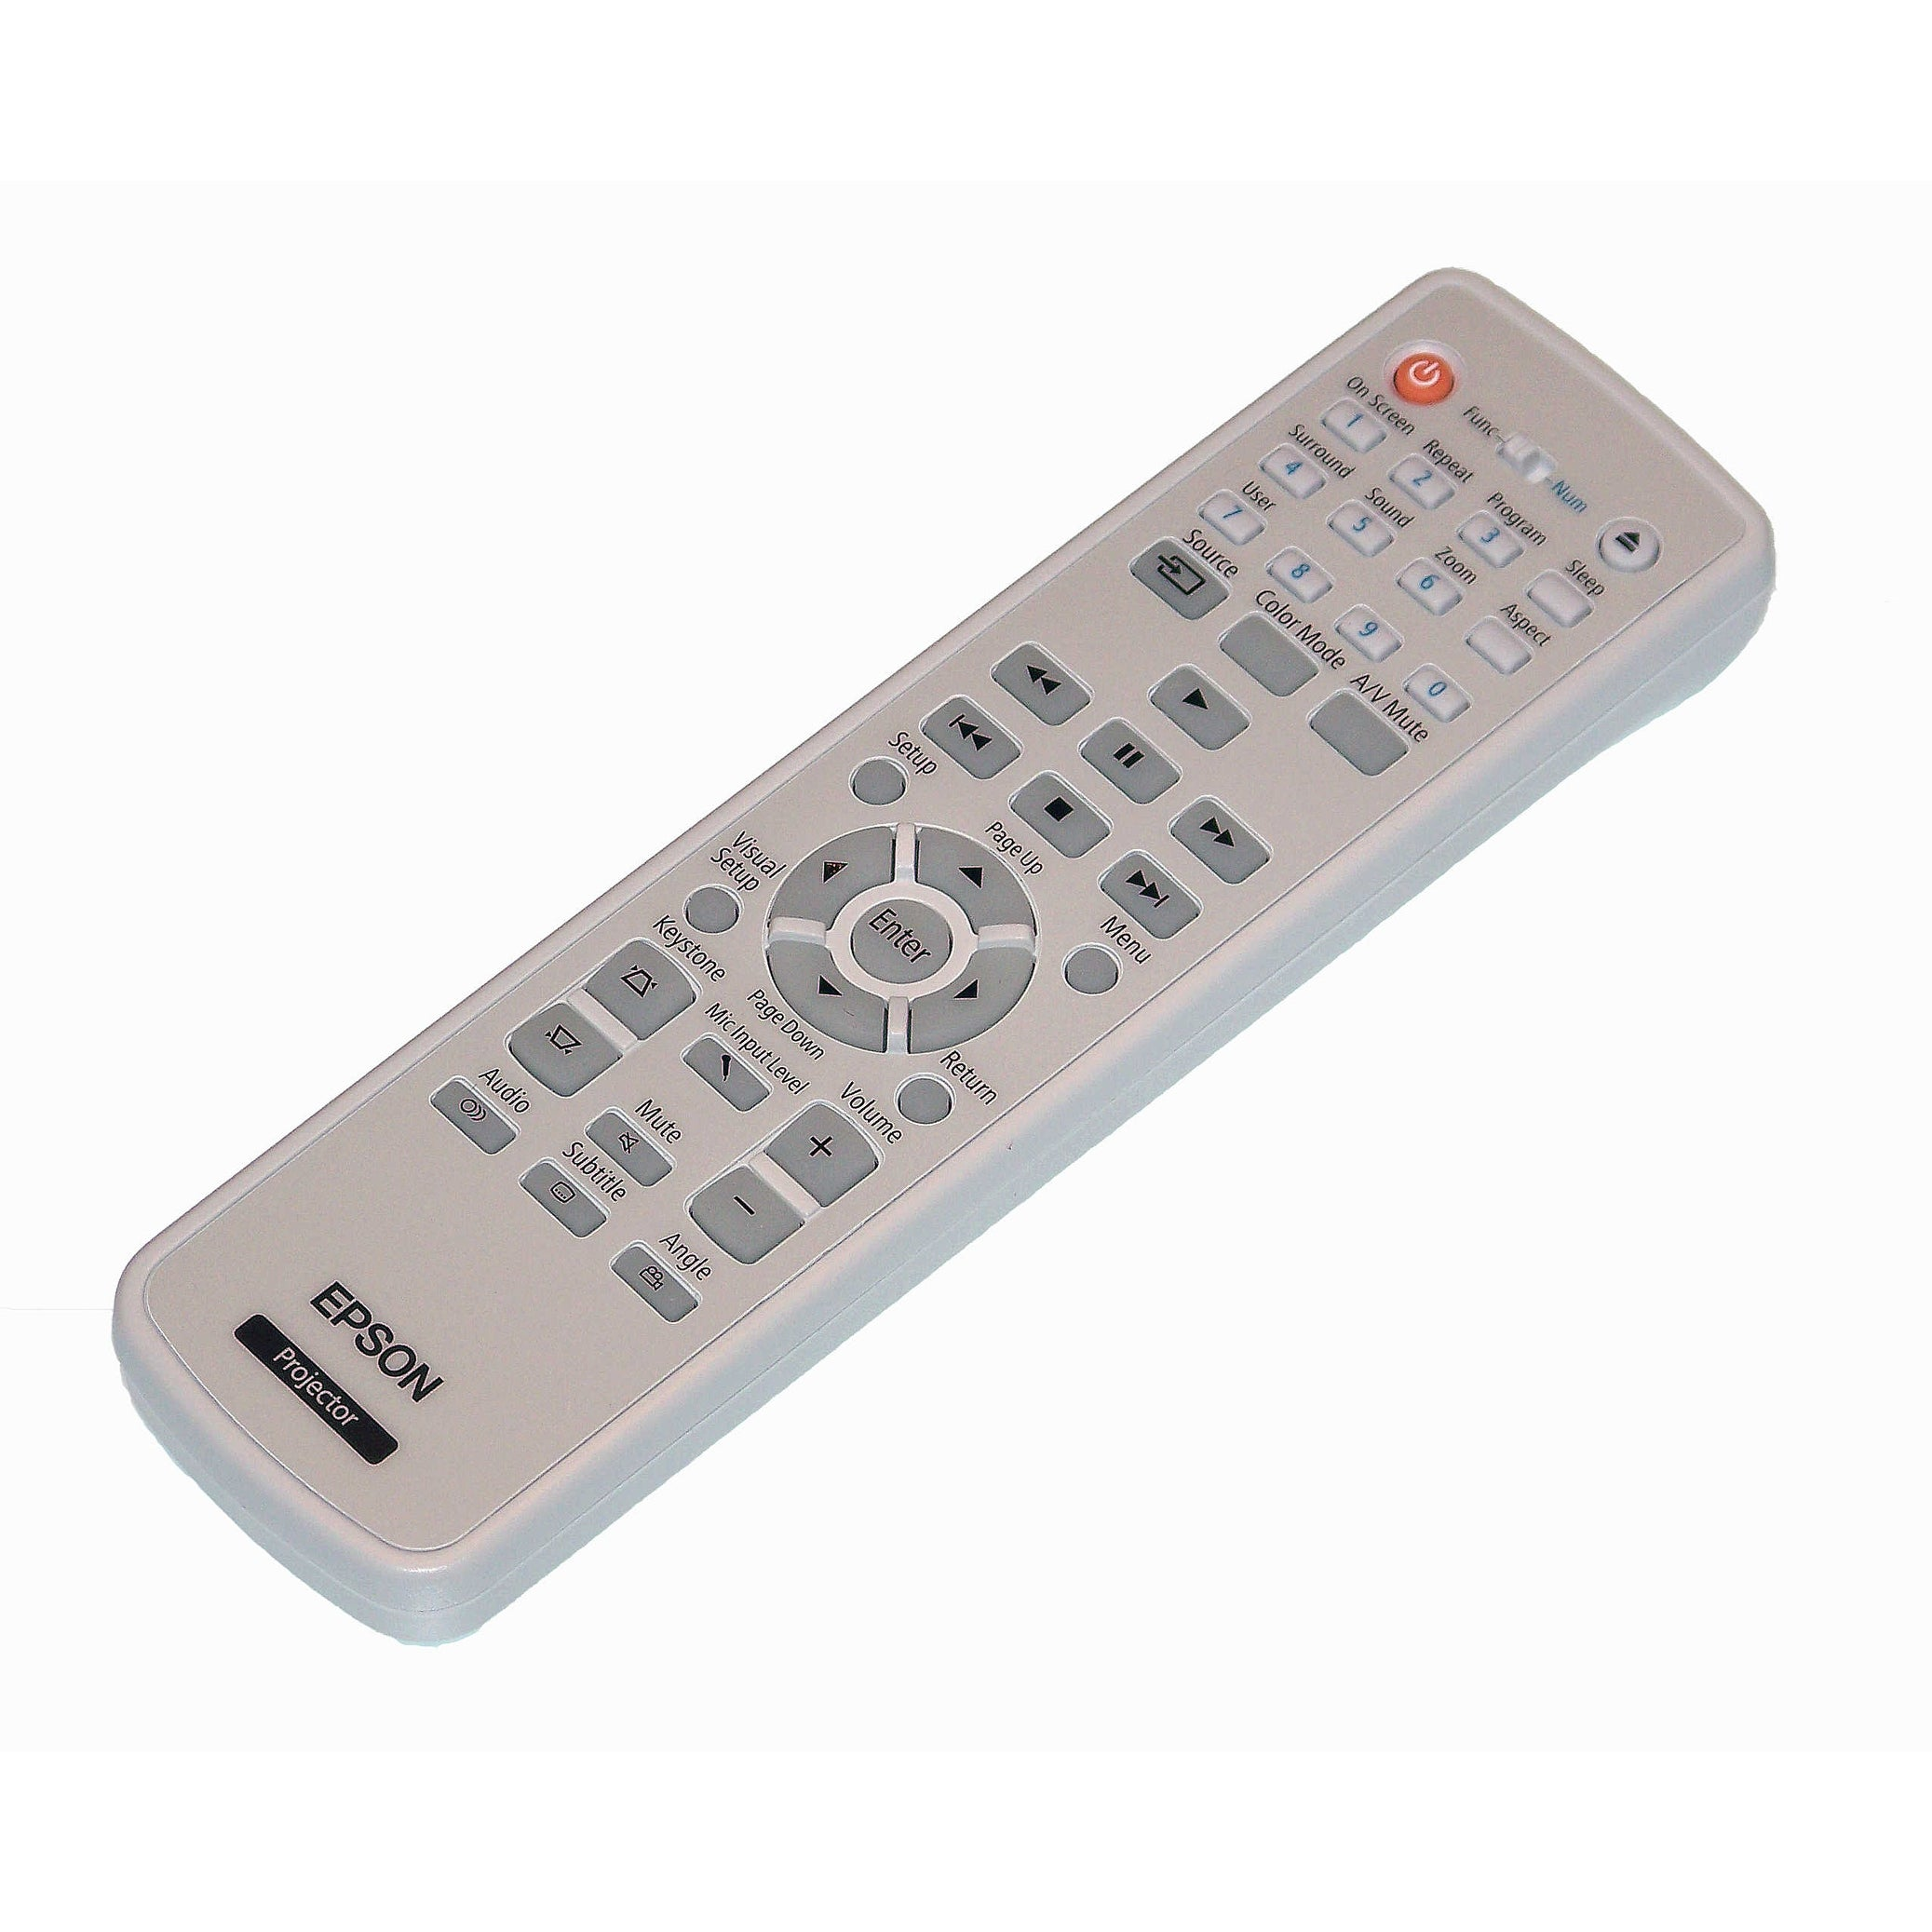 Walmeck G20 2.4GHz Wireless Remote Control with USB Receiver Voice Control for Computer Projector STB Android TV Box Smart TV HTPC Laptop Notebook Black